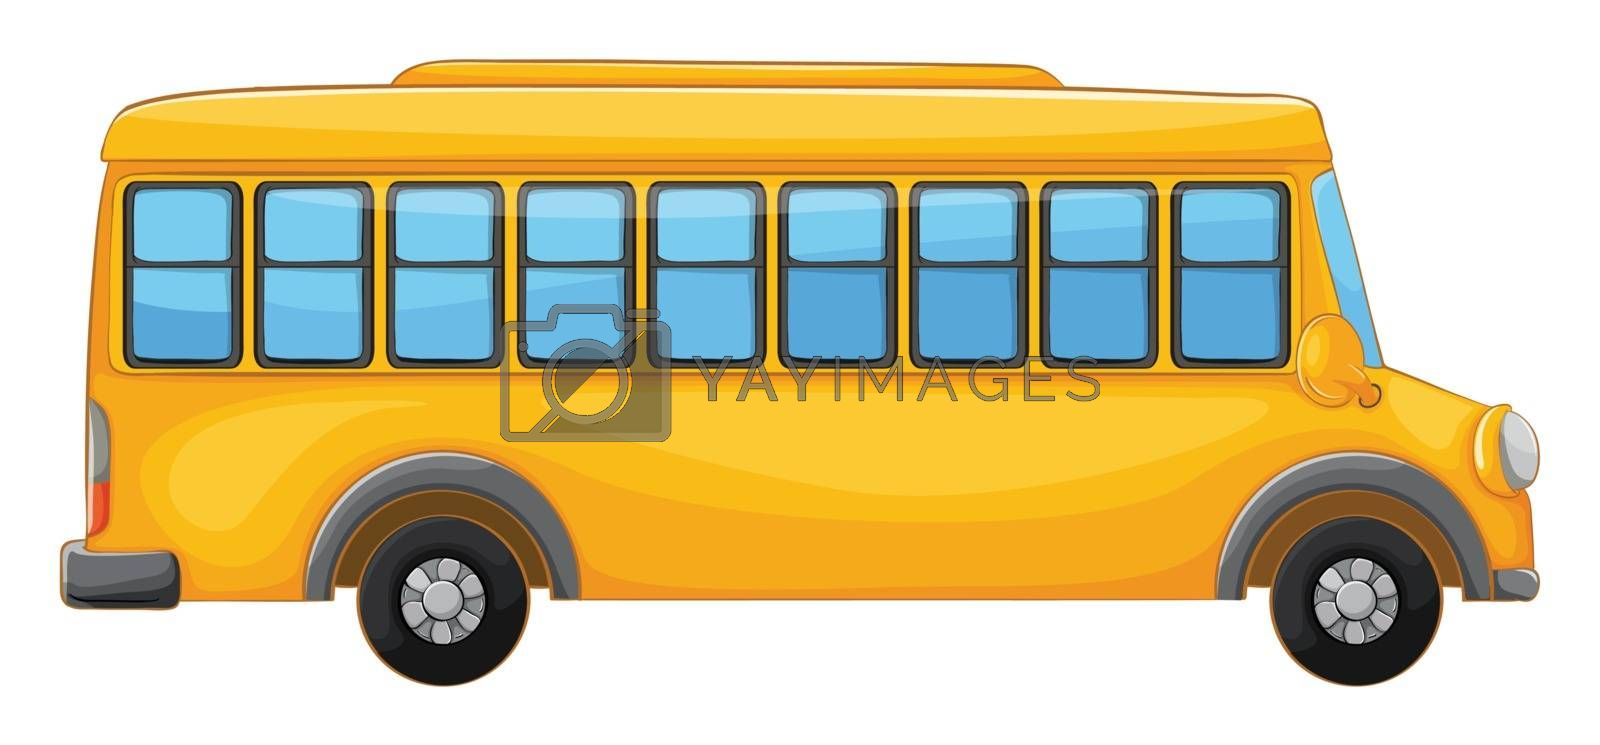 Royalty free image of a bus by iimages